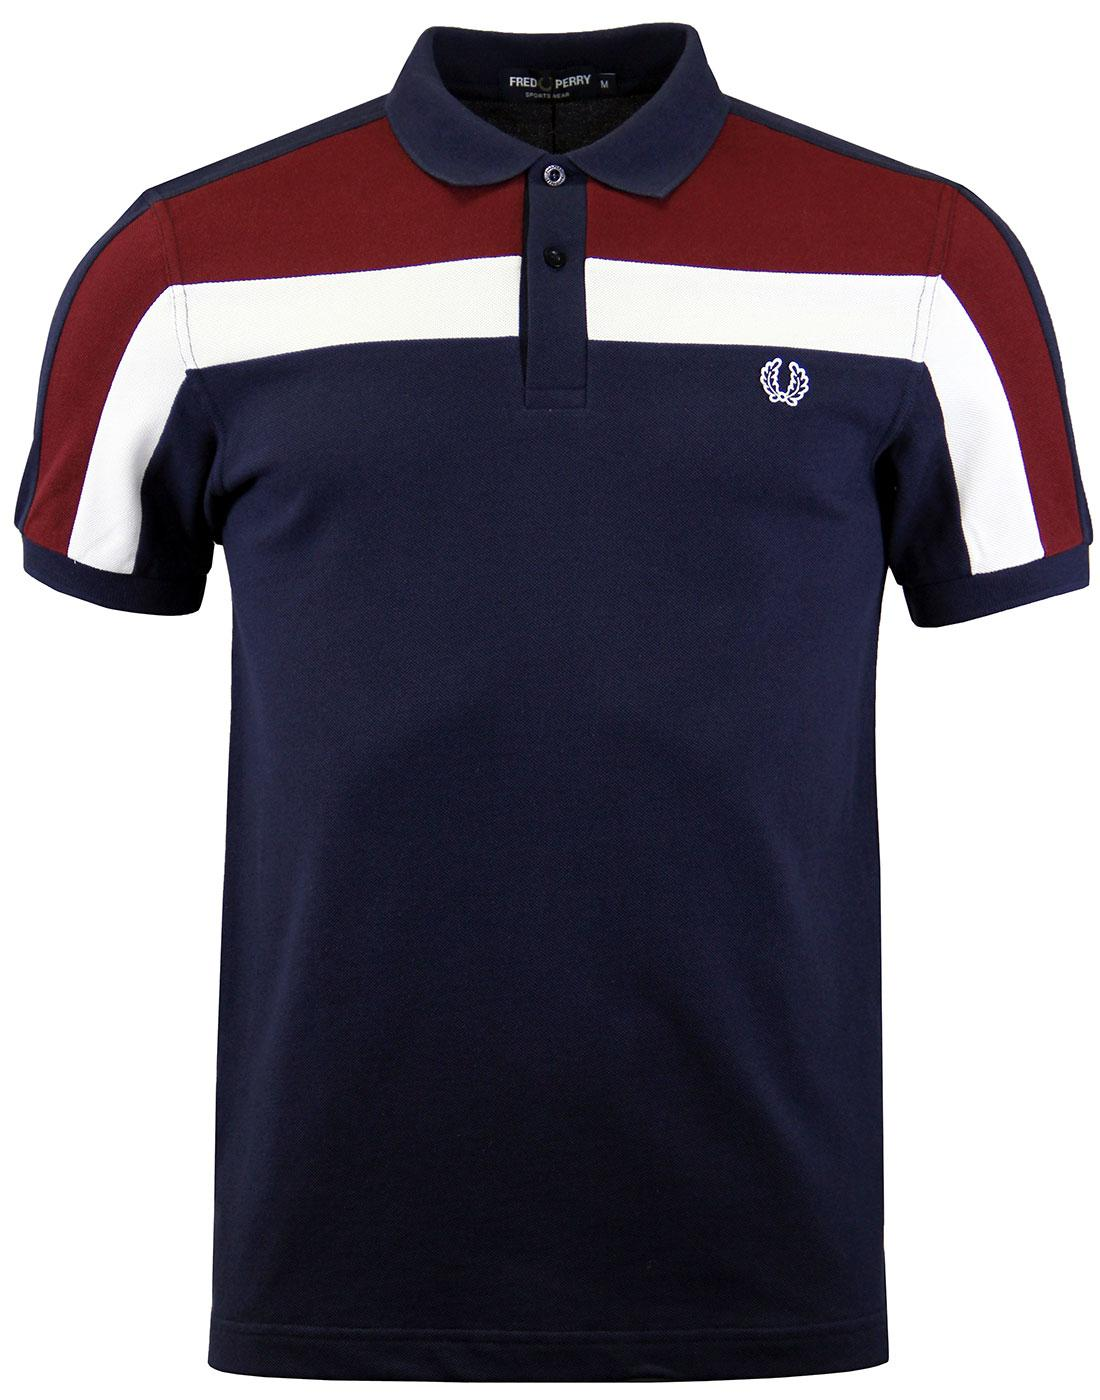 FRED PERRY M2603 colour block pique polo carbon b